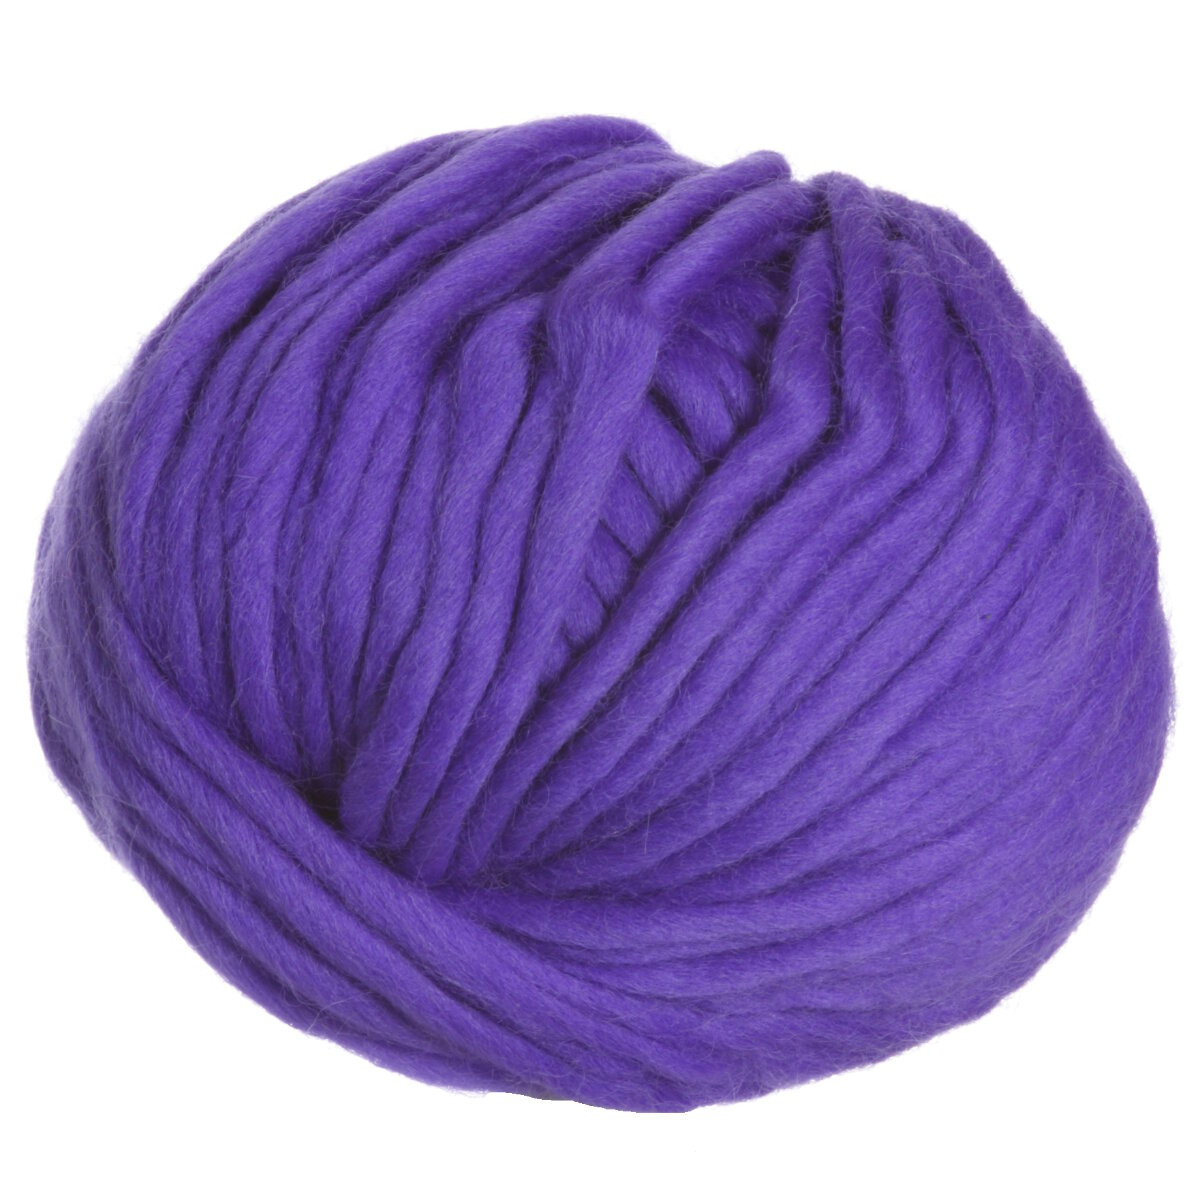 Roving Yarn Best Of Plymouth Galway Roving Yarn 023 Purple Rain at Jimmy Of Marvelous 45 Pictures Roving Yarn